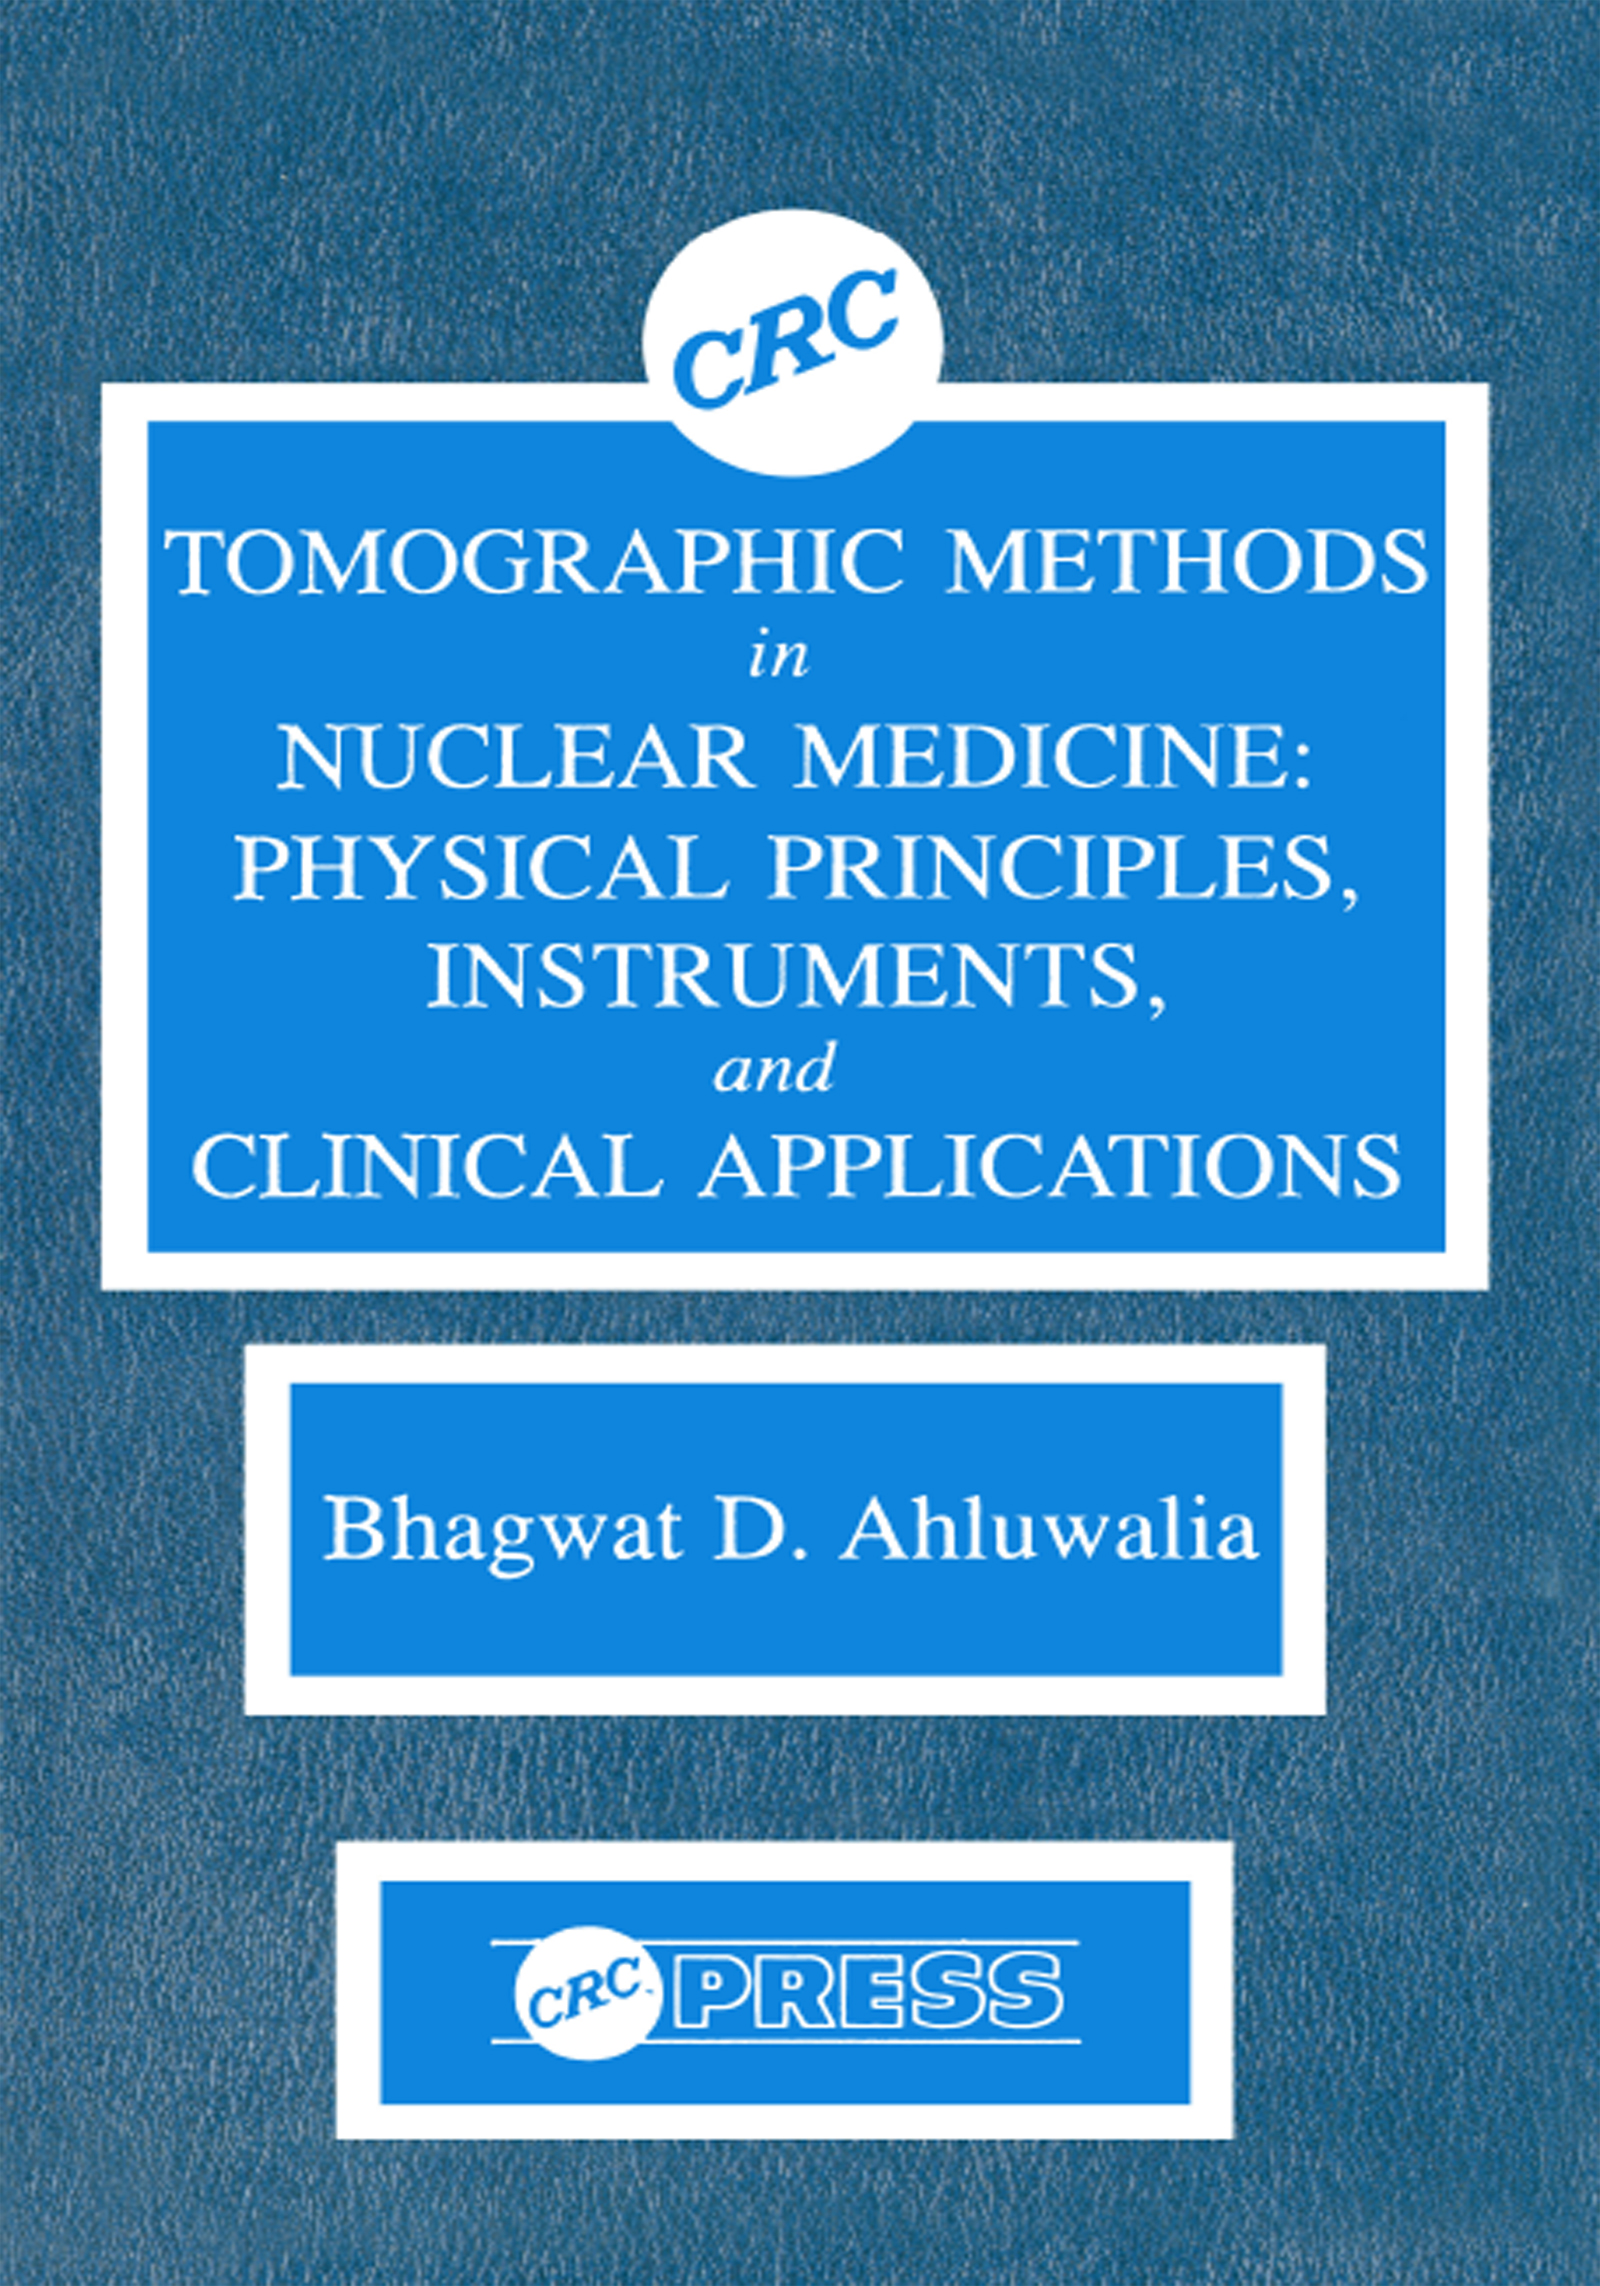 Clinical Applications and Protocols of Single Photon Emission Computed Tomography